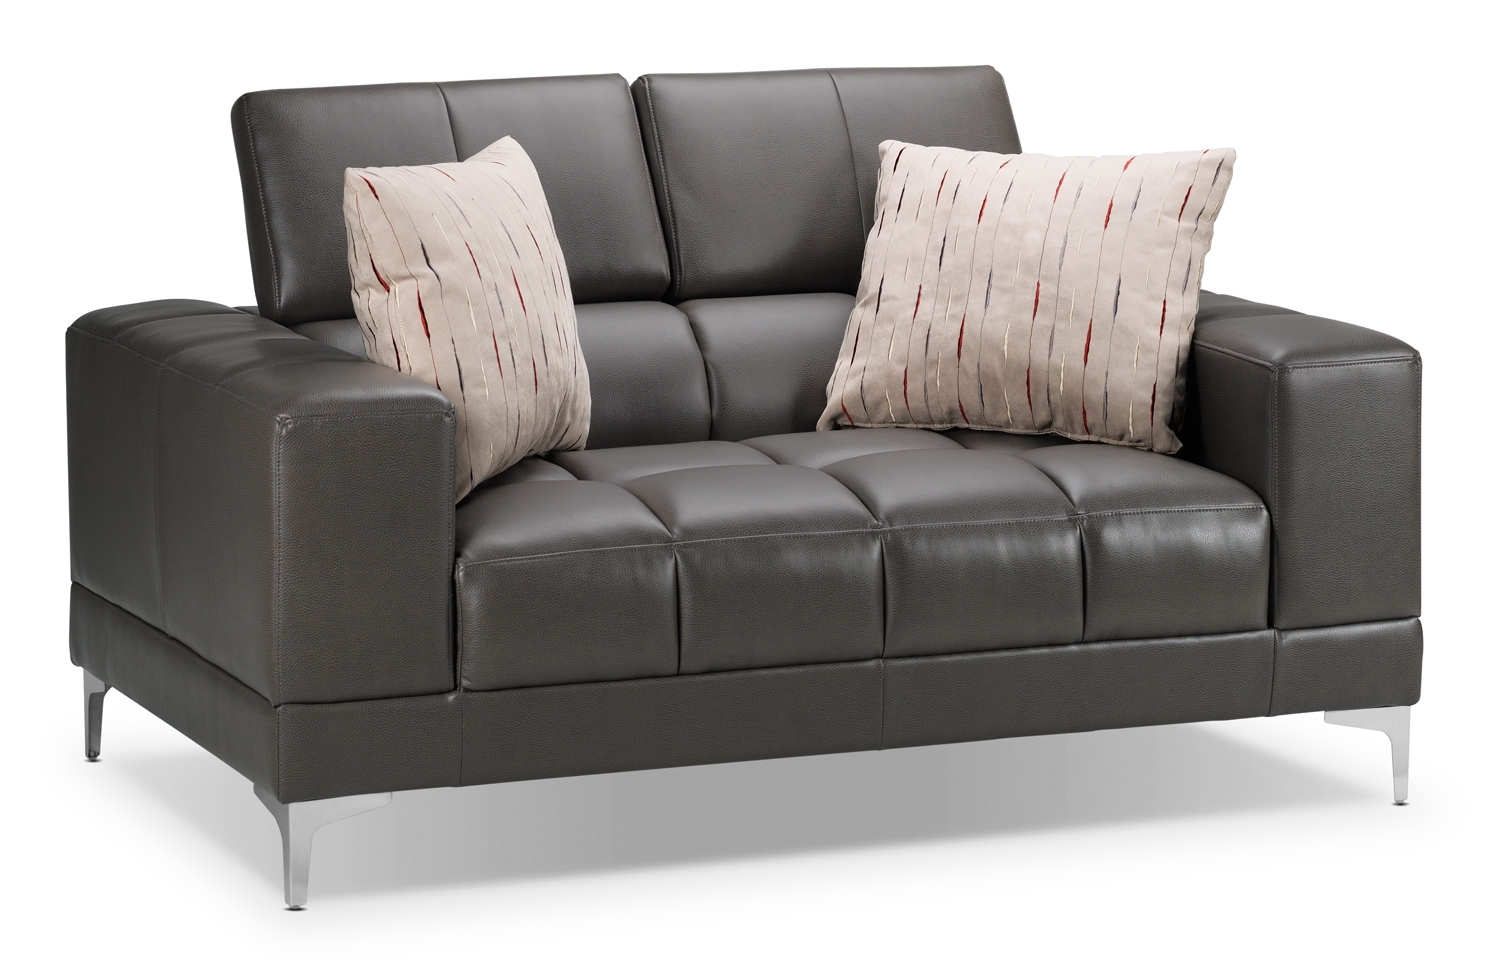 Bel-Air Loveseat - Elephant